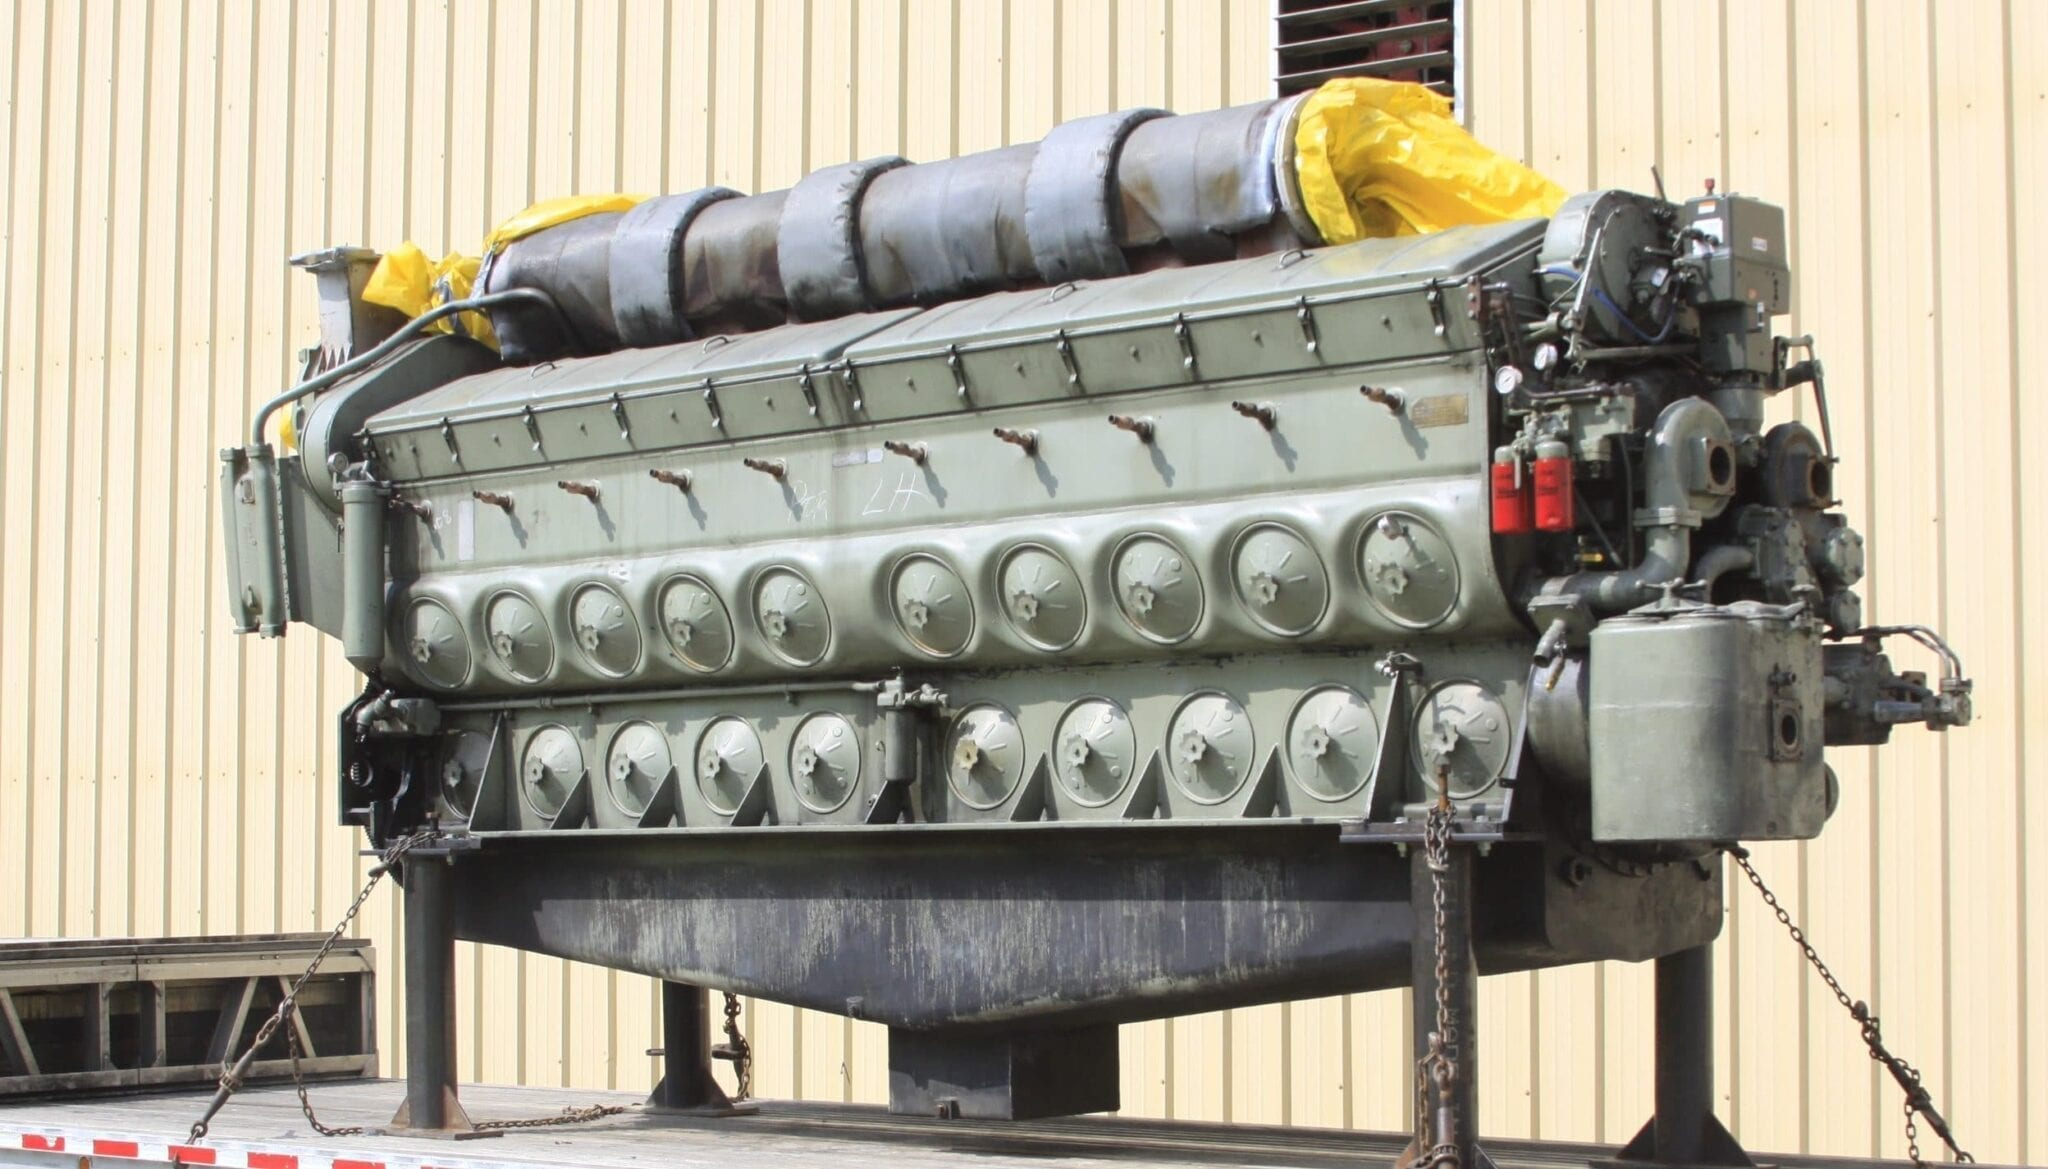 Remanufactured EMD engine